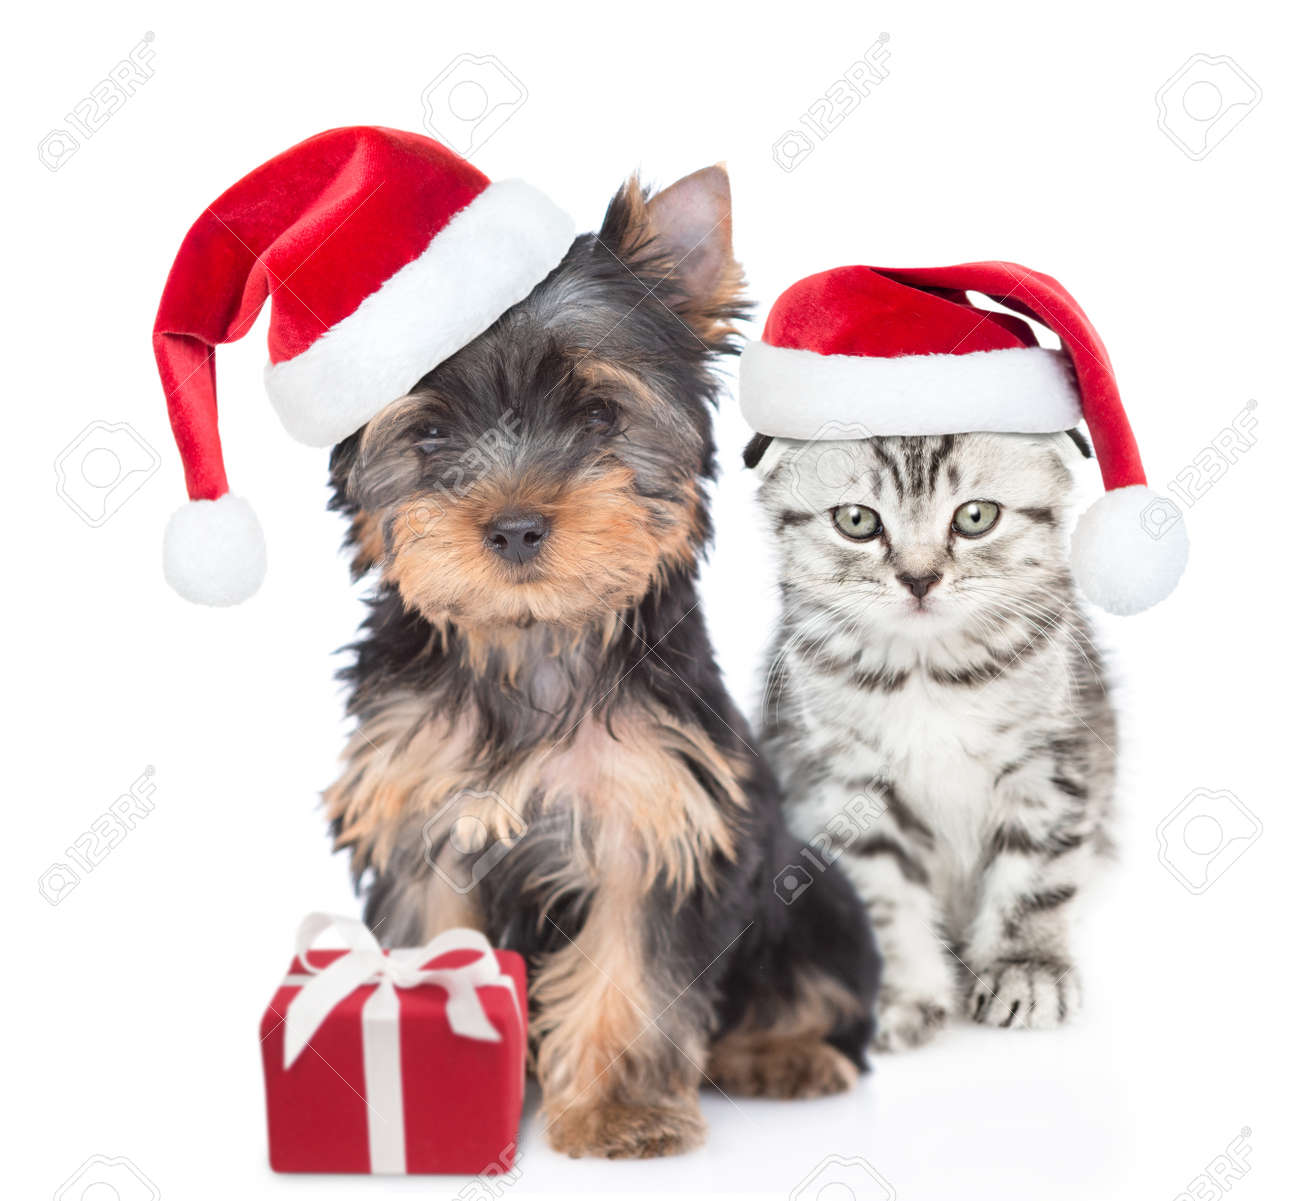 Yorkshire Terrier puppy and gray kitten wearing red christmas hats sit together with gift box. isolated on white background. - 167146998